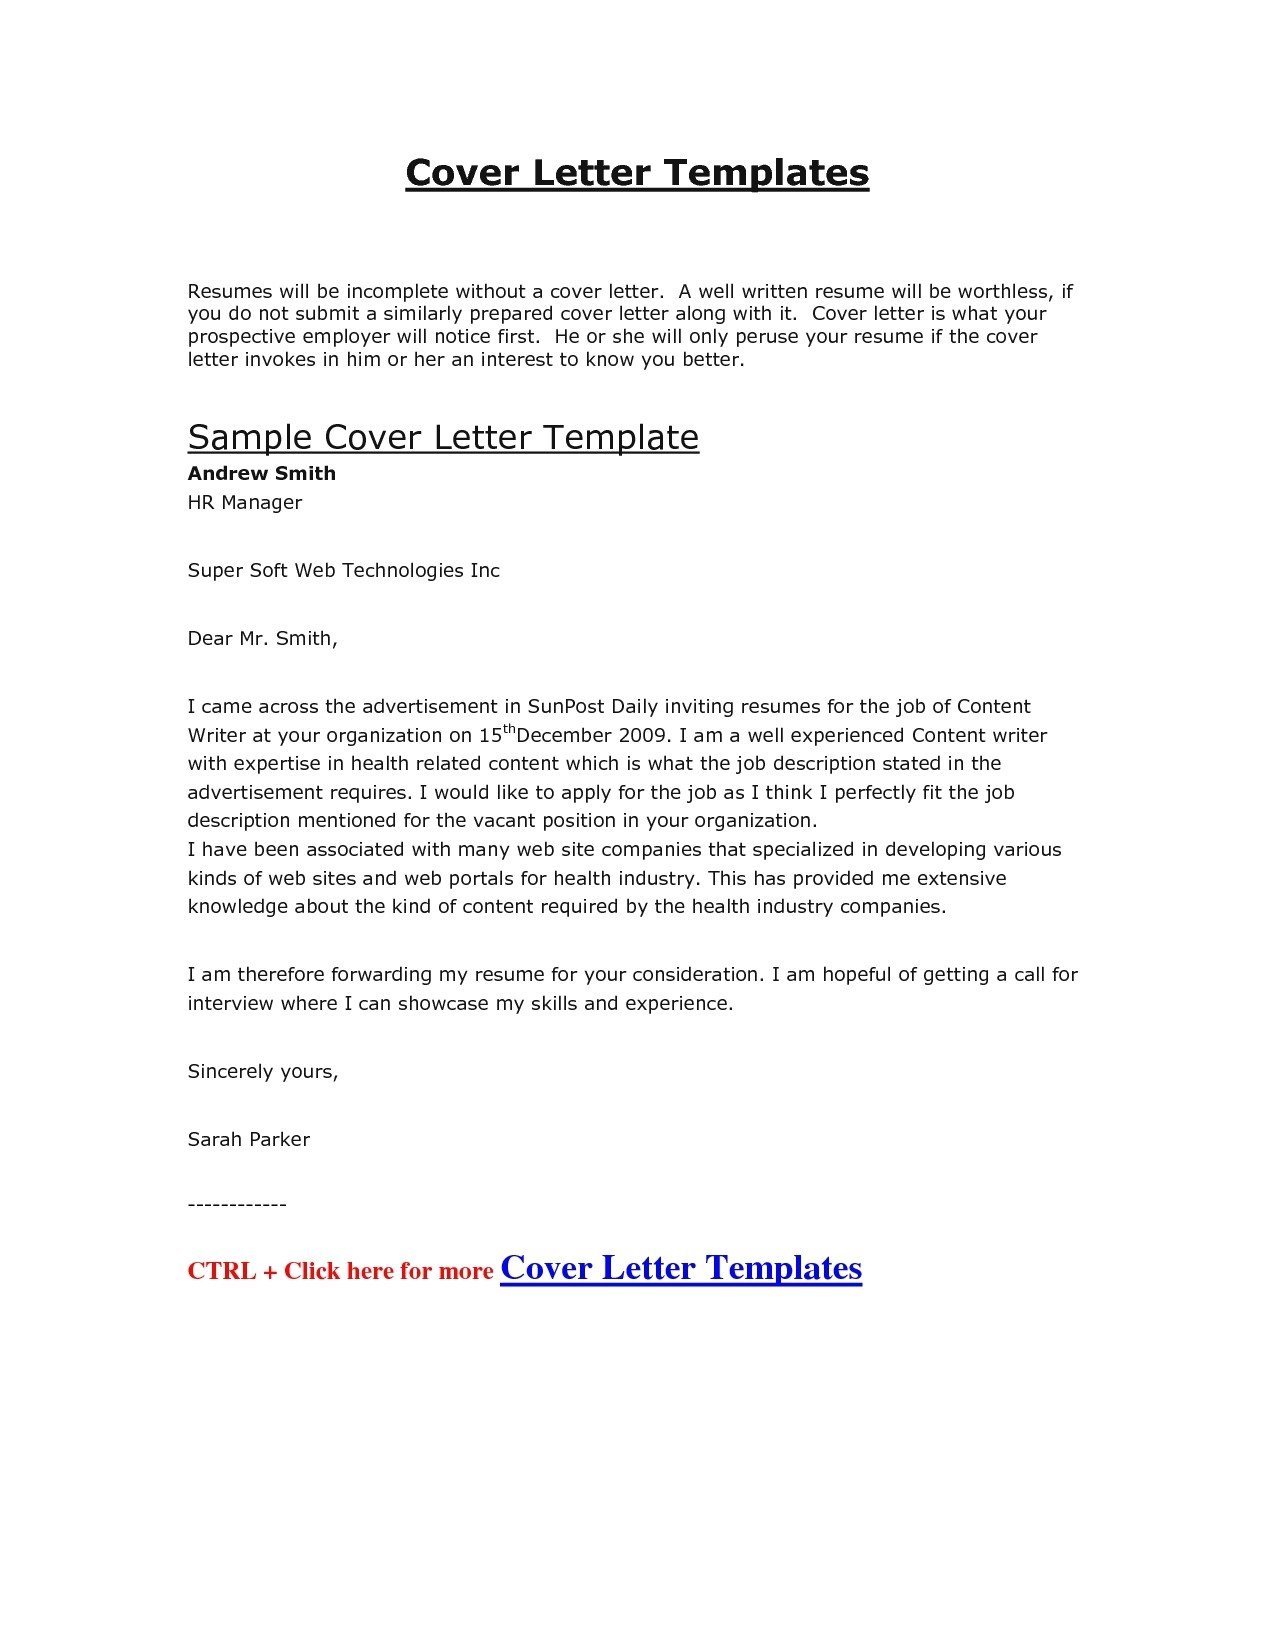 Template for Cover Letter and Resume Resume Cover Letter Template 2017 Learnhowtoloseweight Net